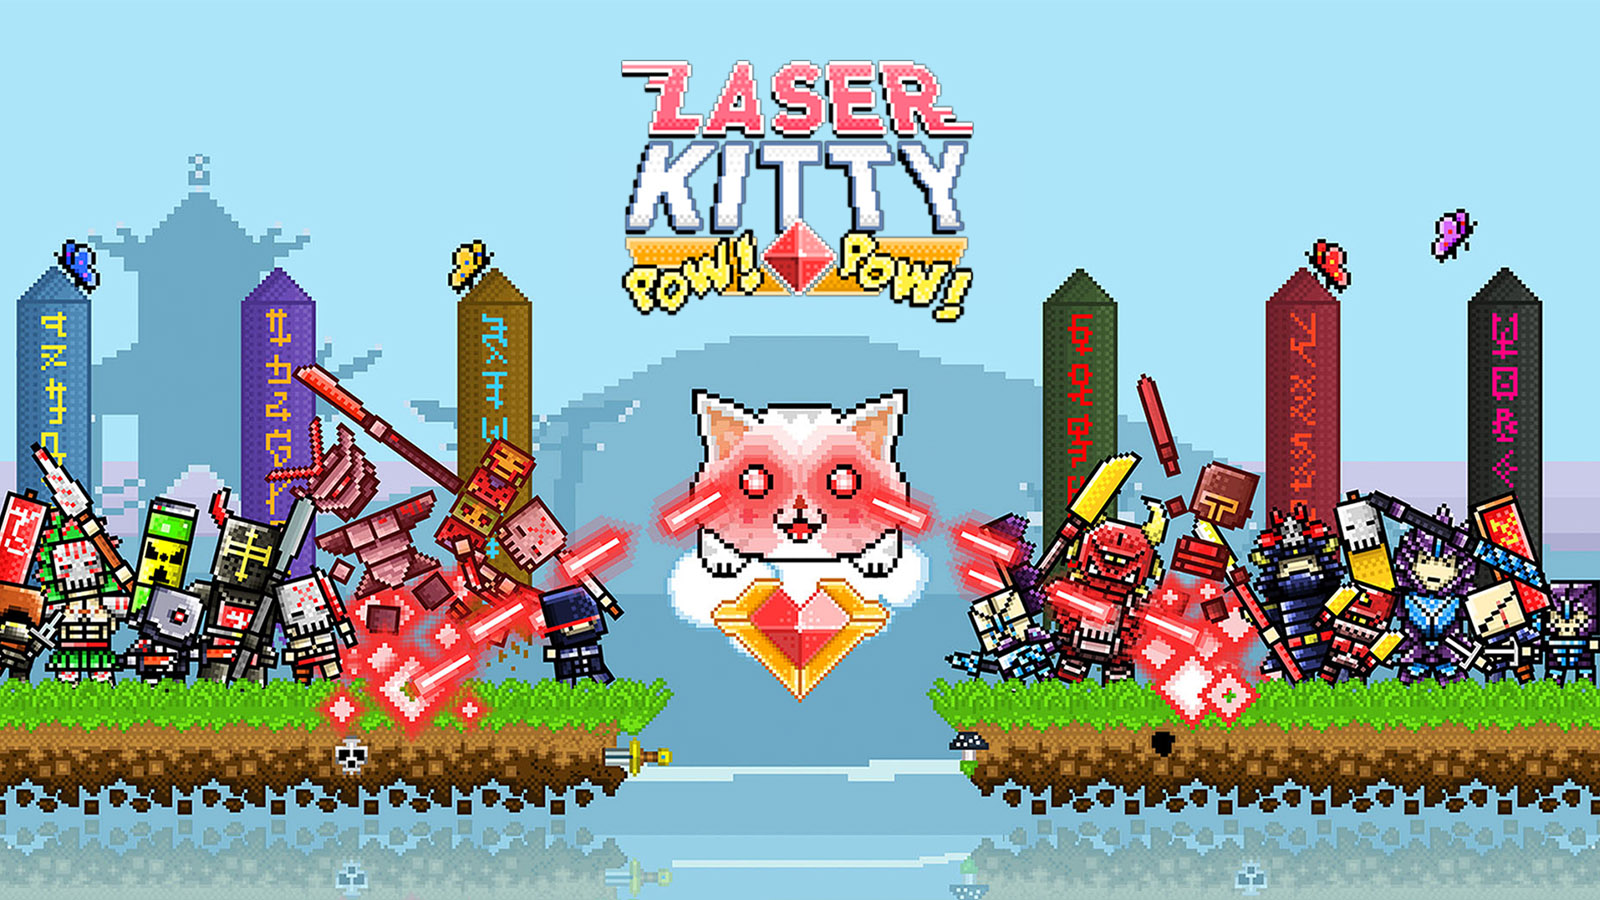 Laser Kitty Pow Pow features adorable cats that shoot laser beams from their eyes.